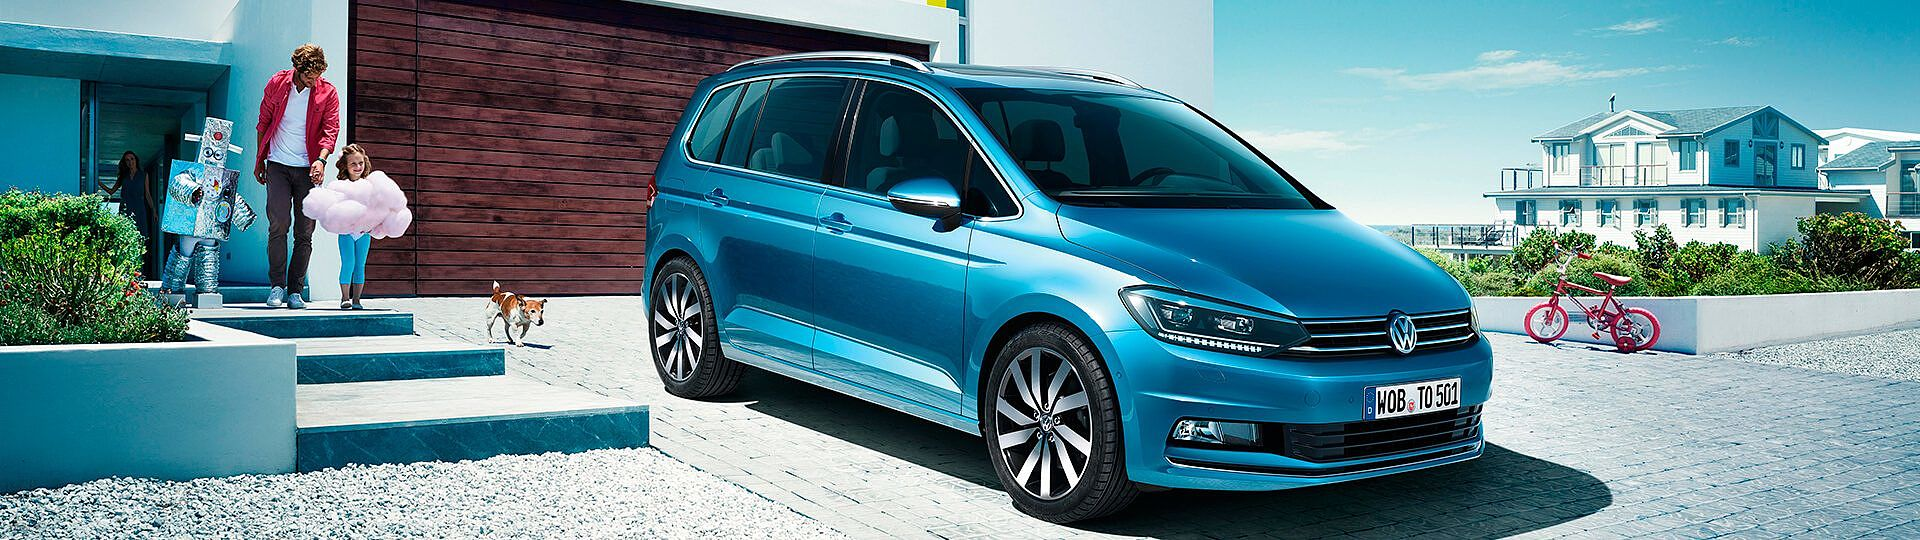 VW Touran Highline Konfigurator